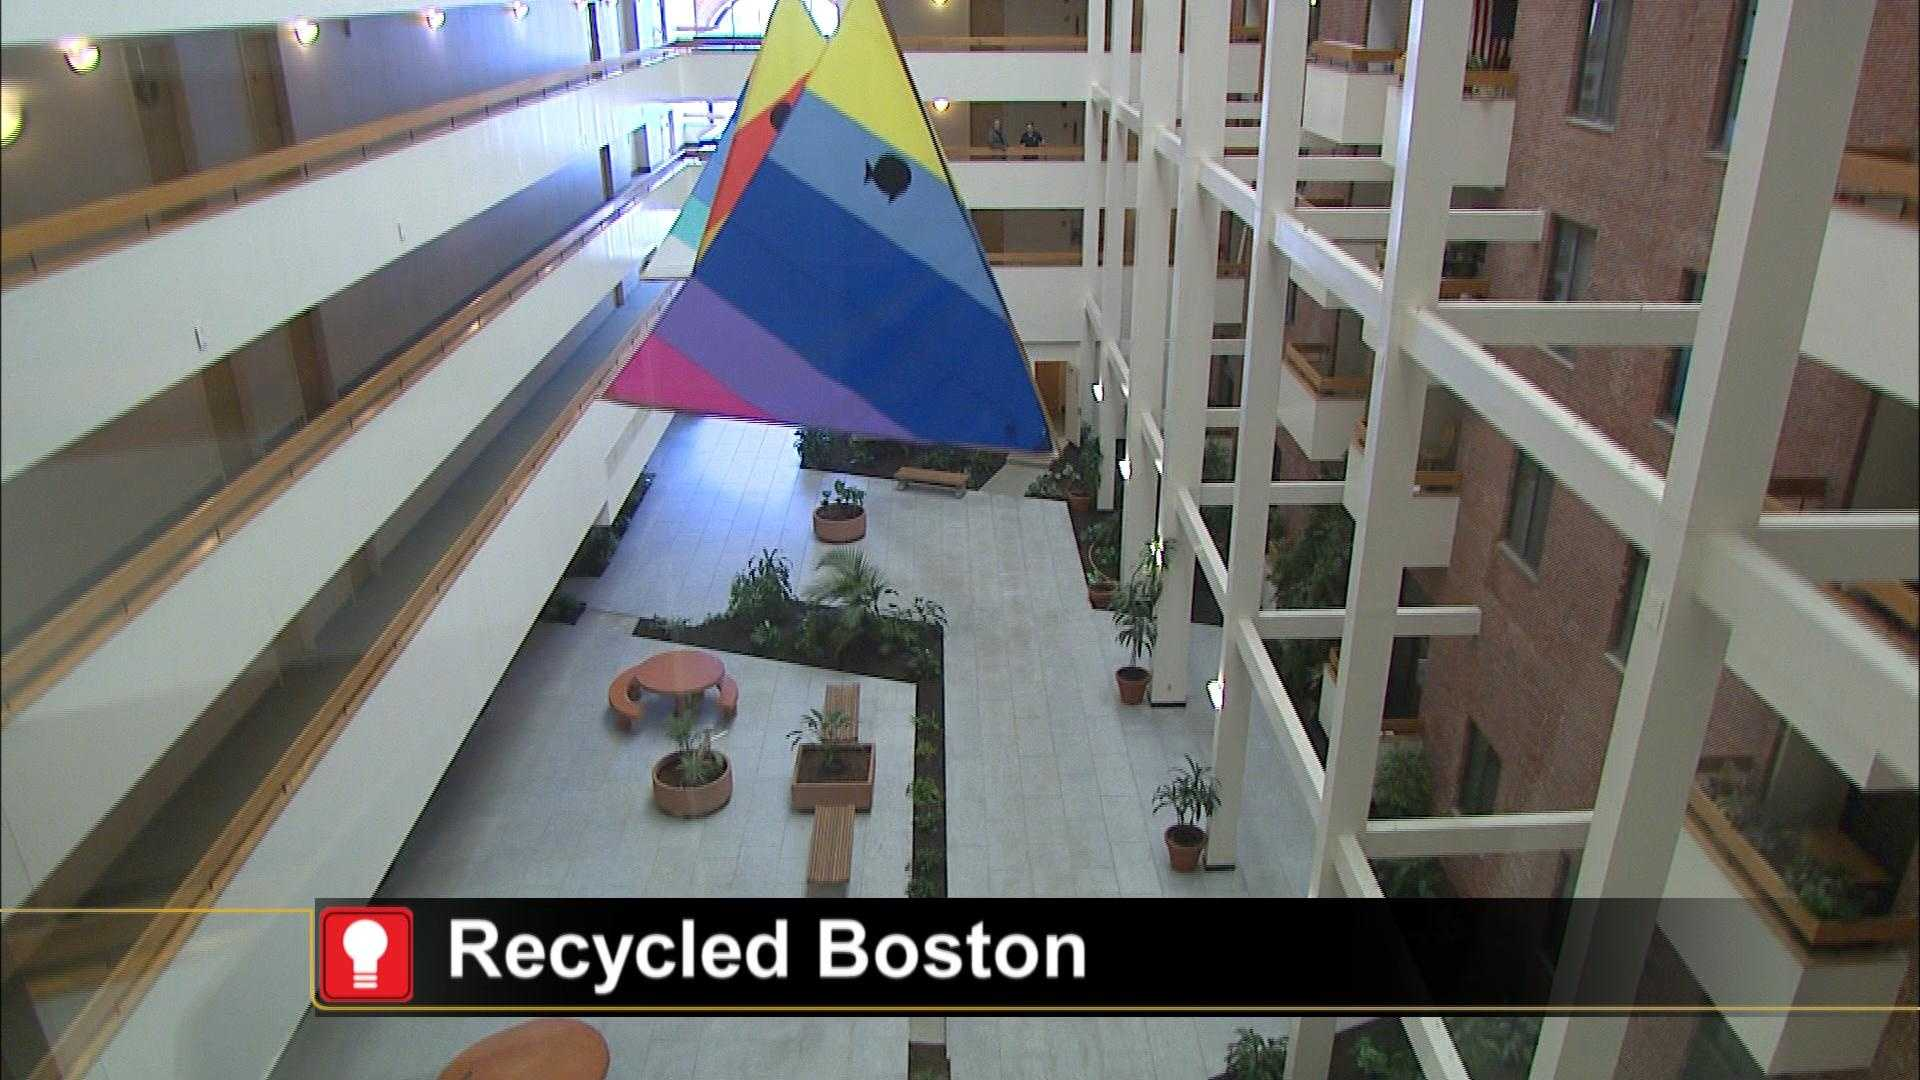 Recycled Boston